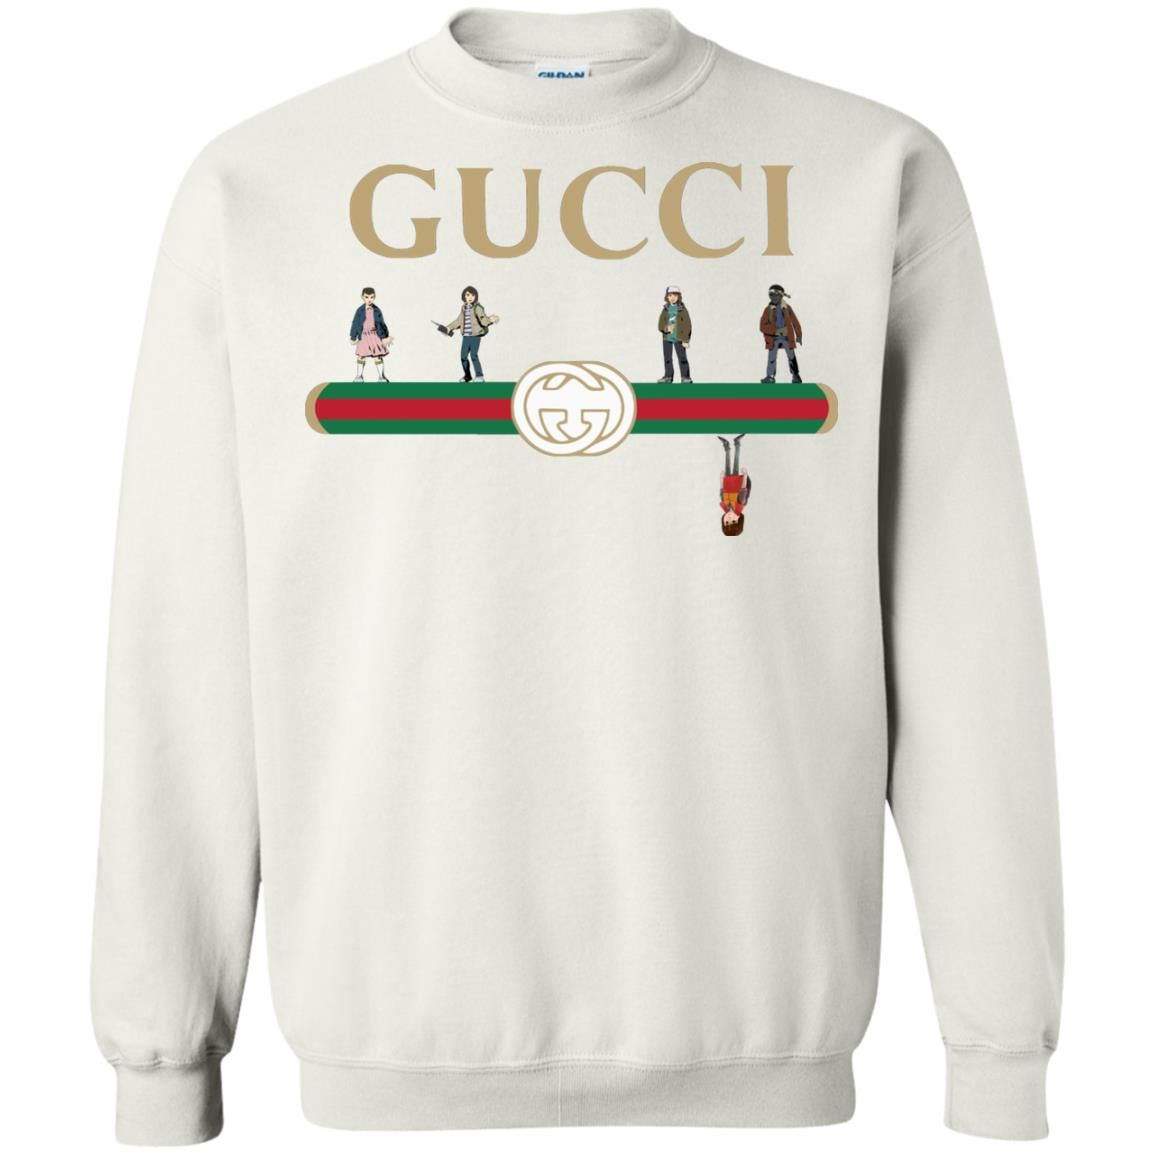 2186cb9bd8280 Stranger Things Upside Down Gucci shirt